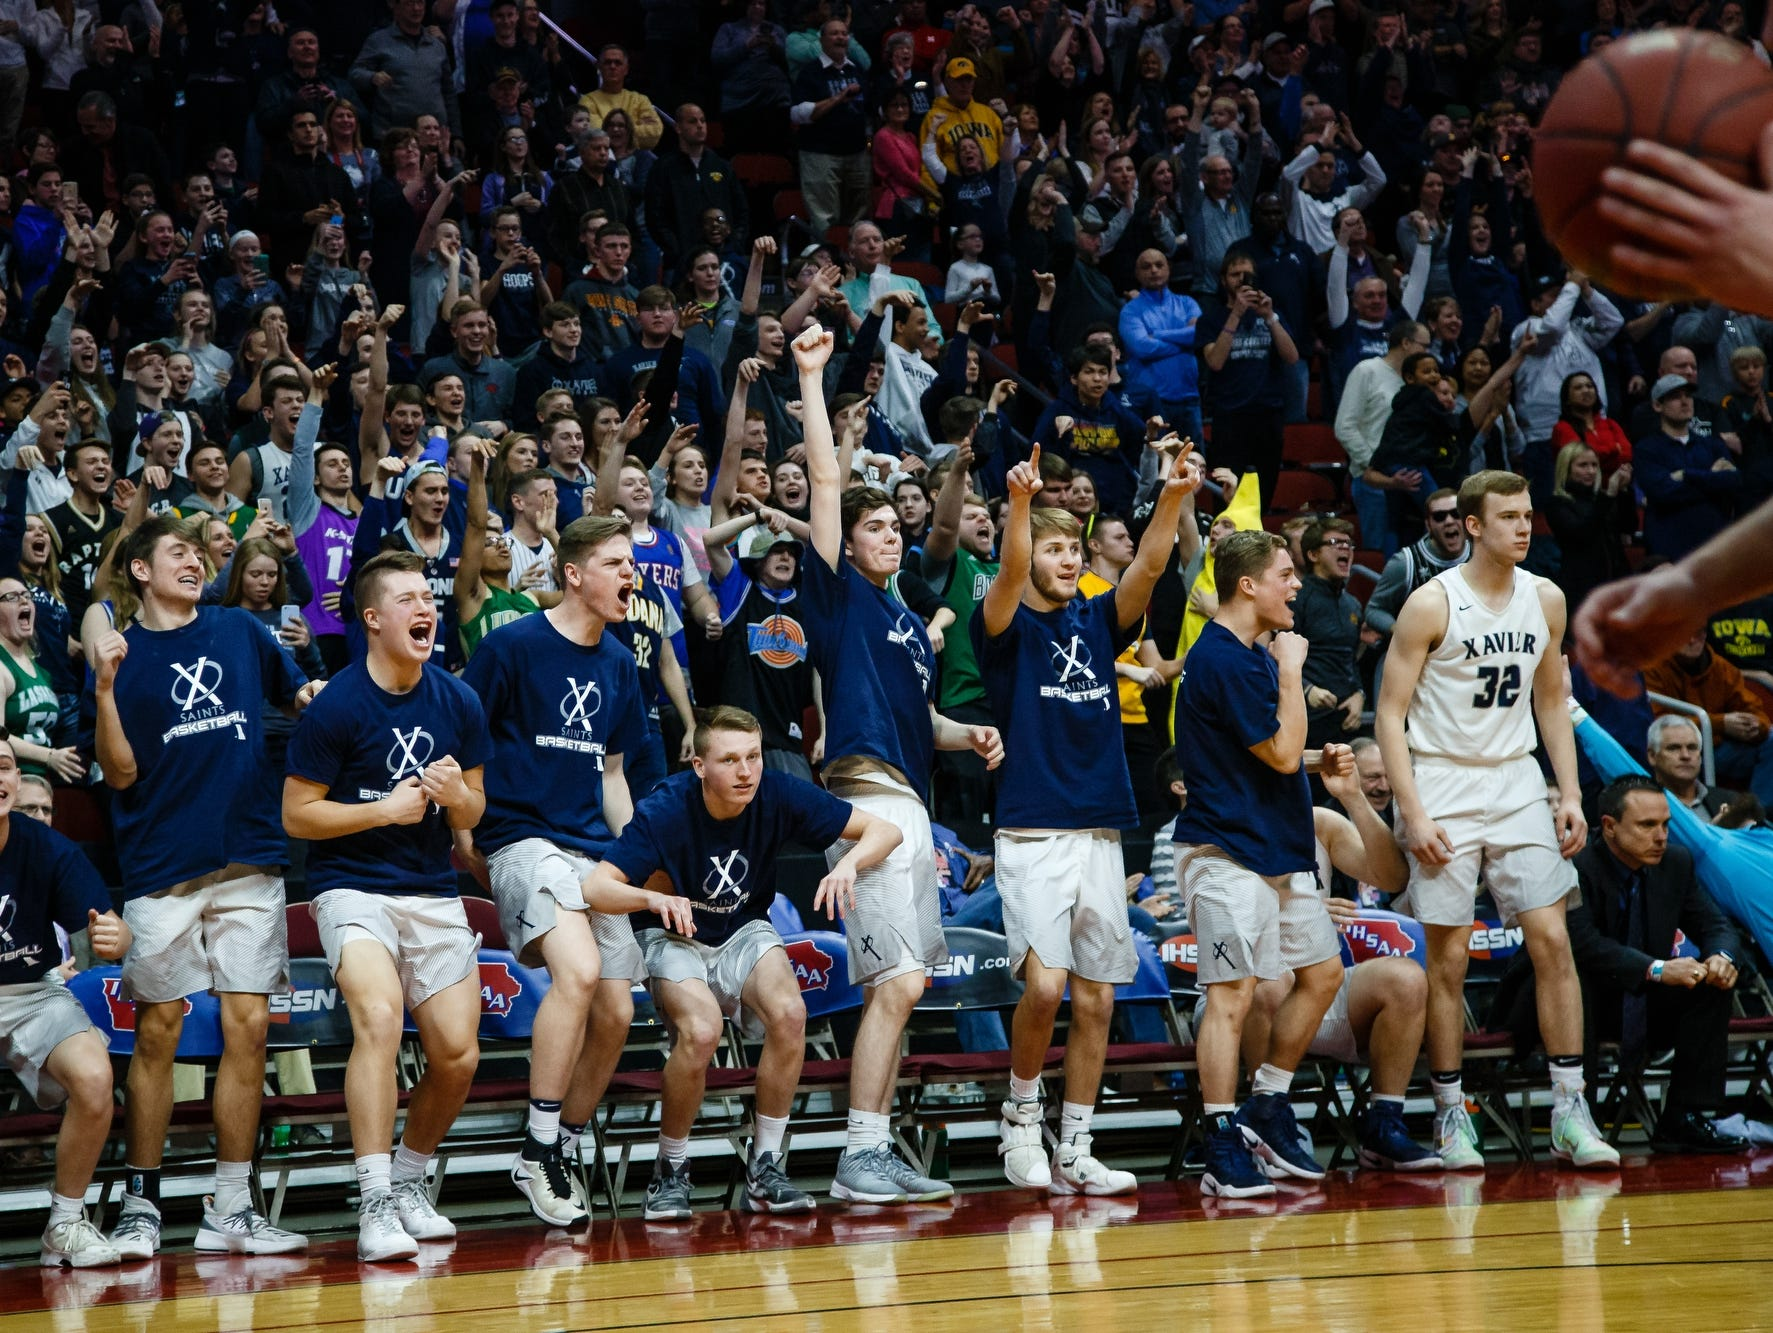 The Cedar Rapids, Xavier bench erupts as time runs out and they defeat Sergeant Bluff-Luton during their 3A state basketball championship game on Saturday, March 11, 2017, in Des Moines. Cedar Rapids, Xavier would go on to win 54-49.